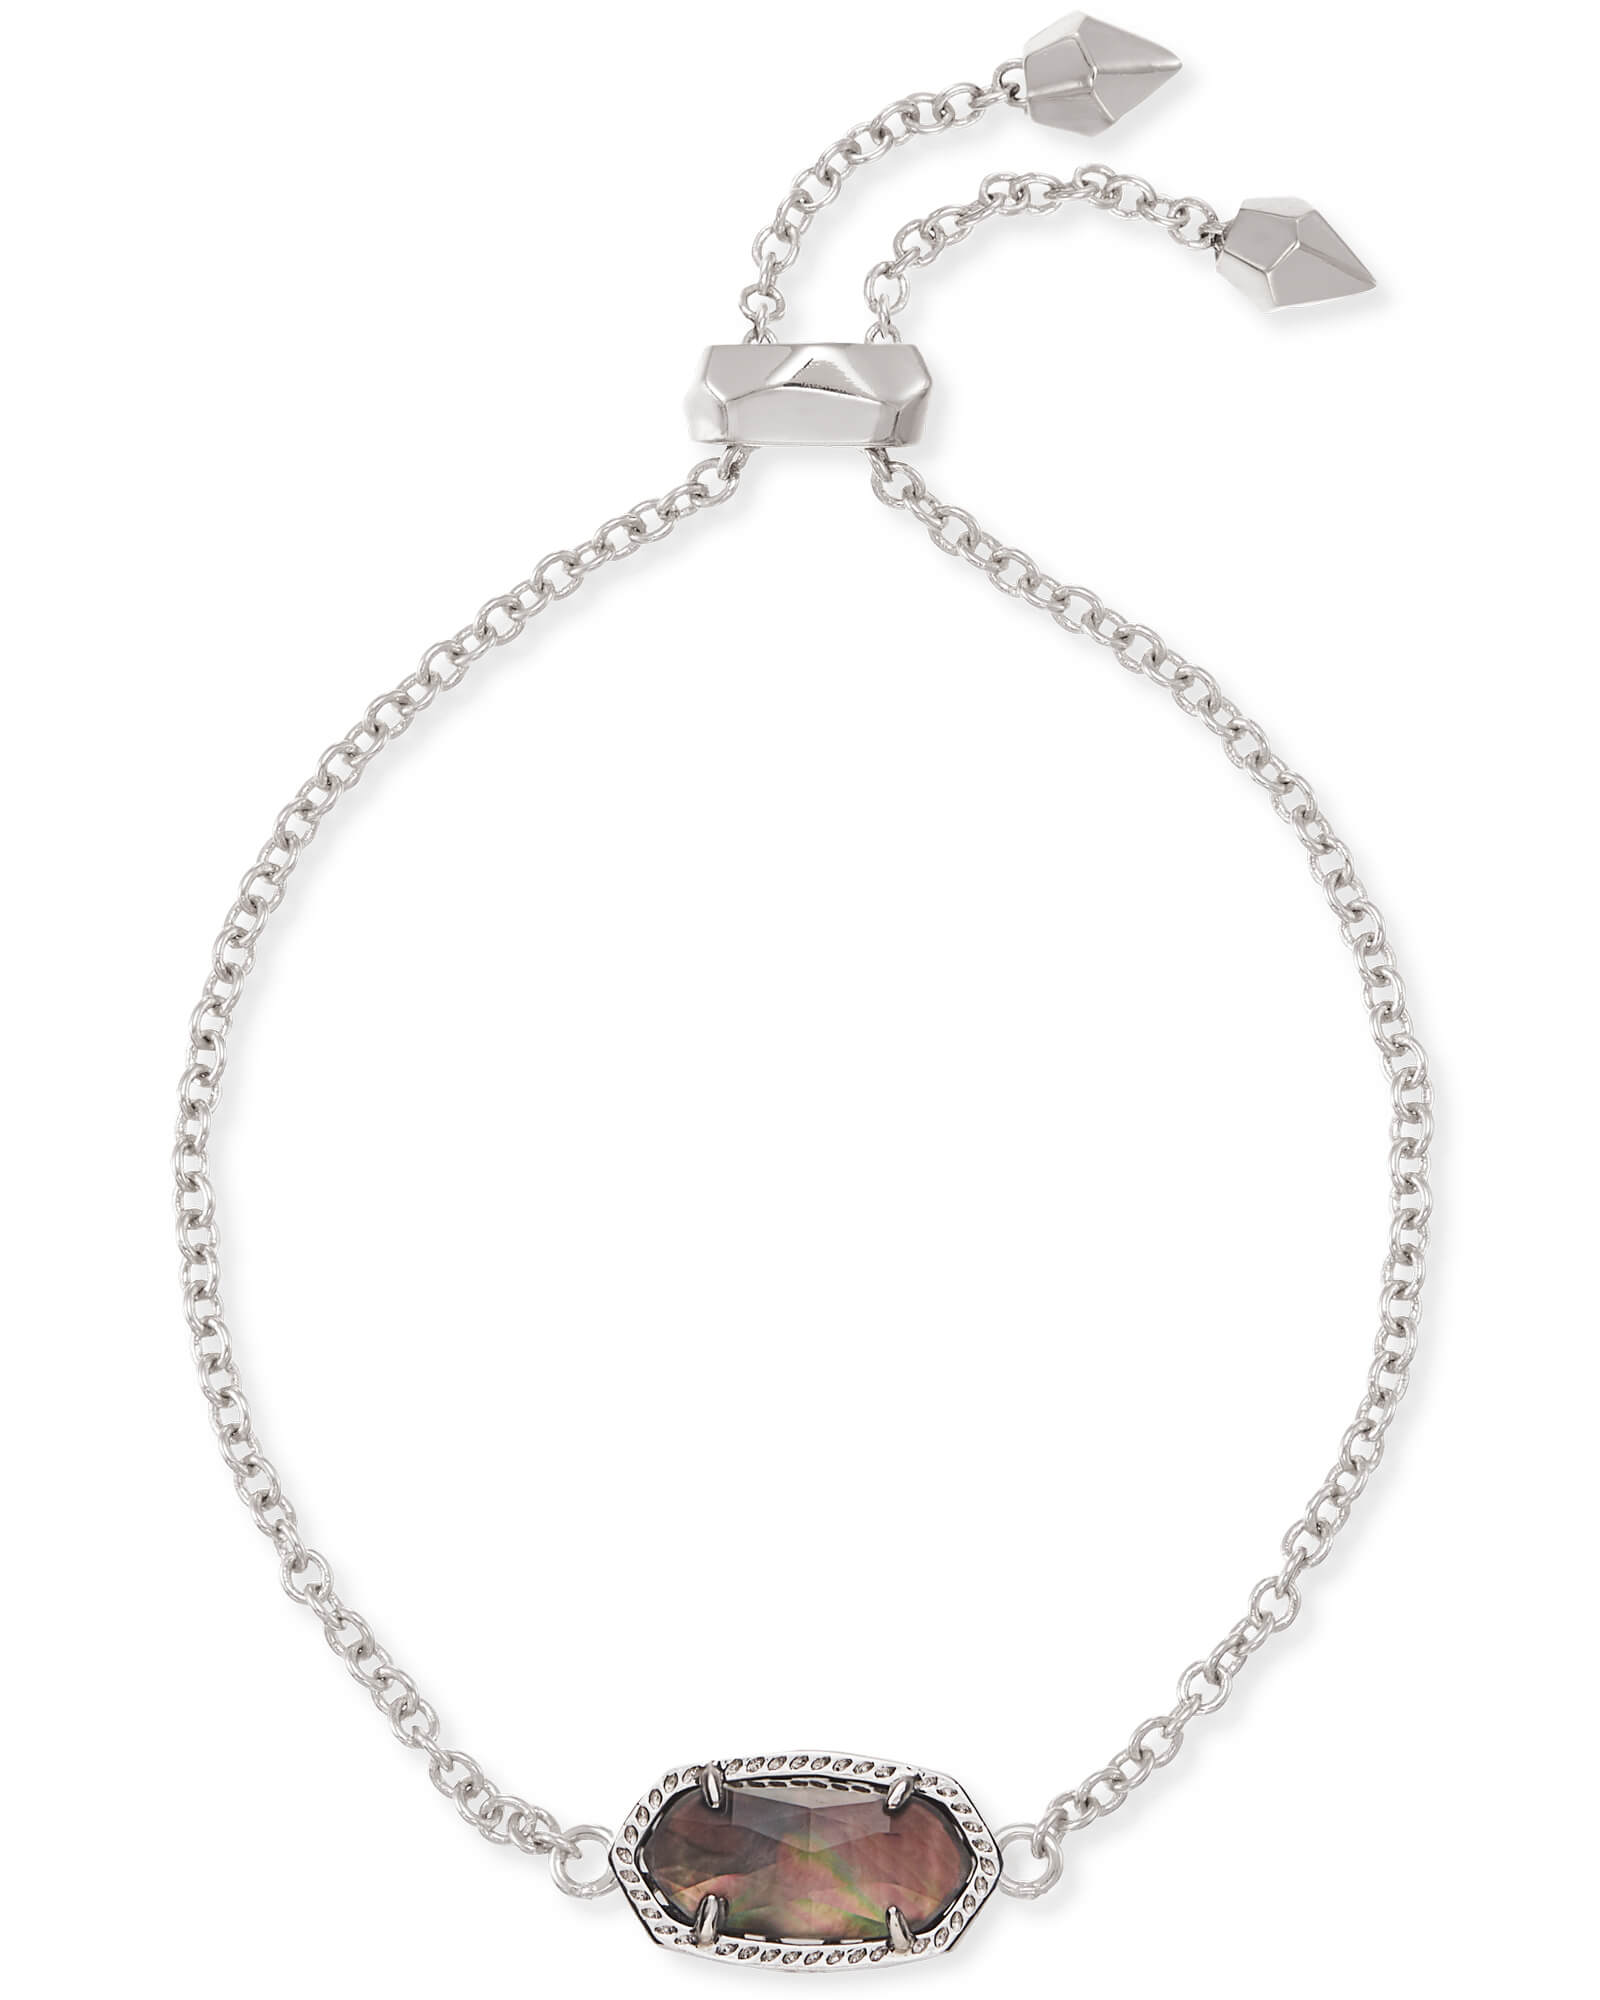 Elaina Silver Chain Bracelet in Black Mother of Pearl